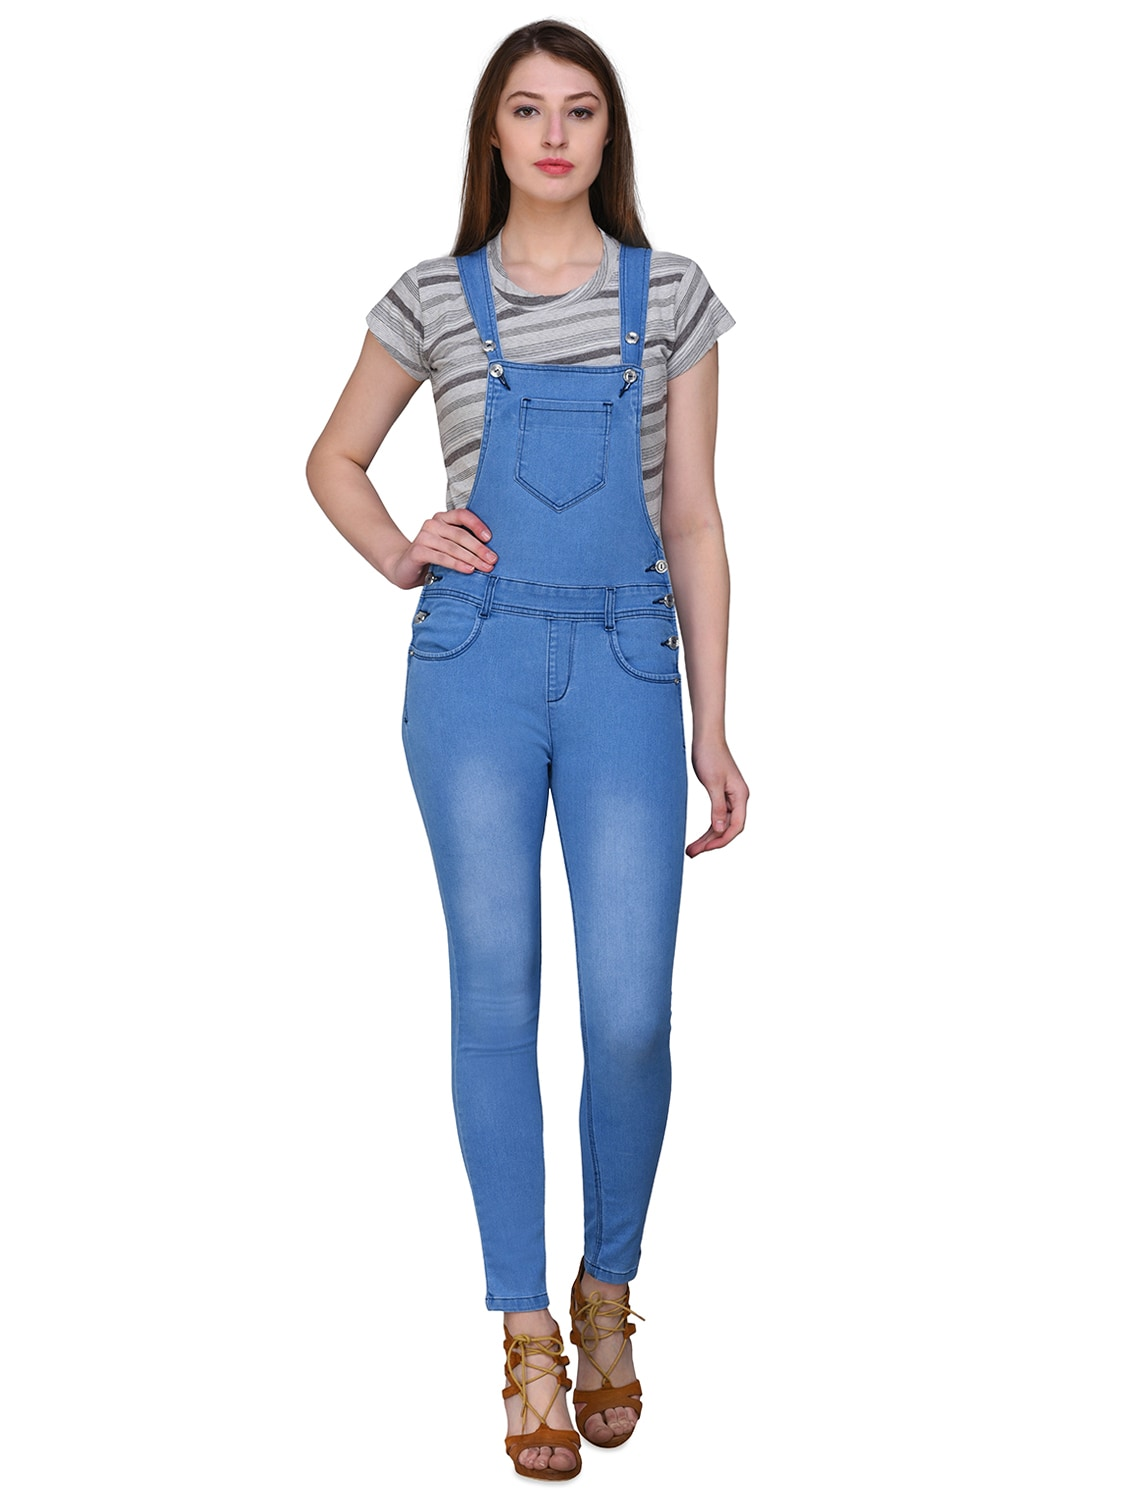 f01c17e06df Buy Blue Denim Dungaree Jumpsuit for Women from Svt Ada Collections for  ₹989 at 55% off